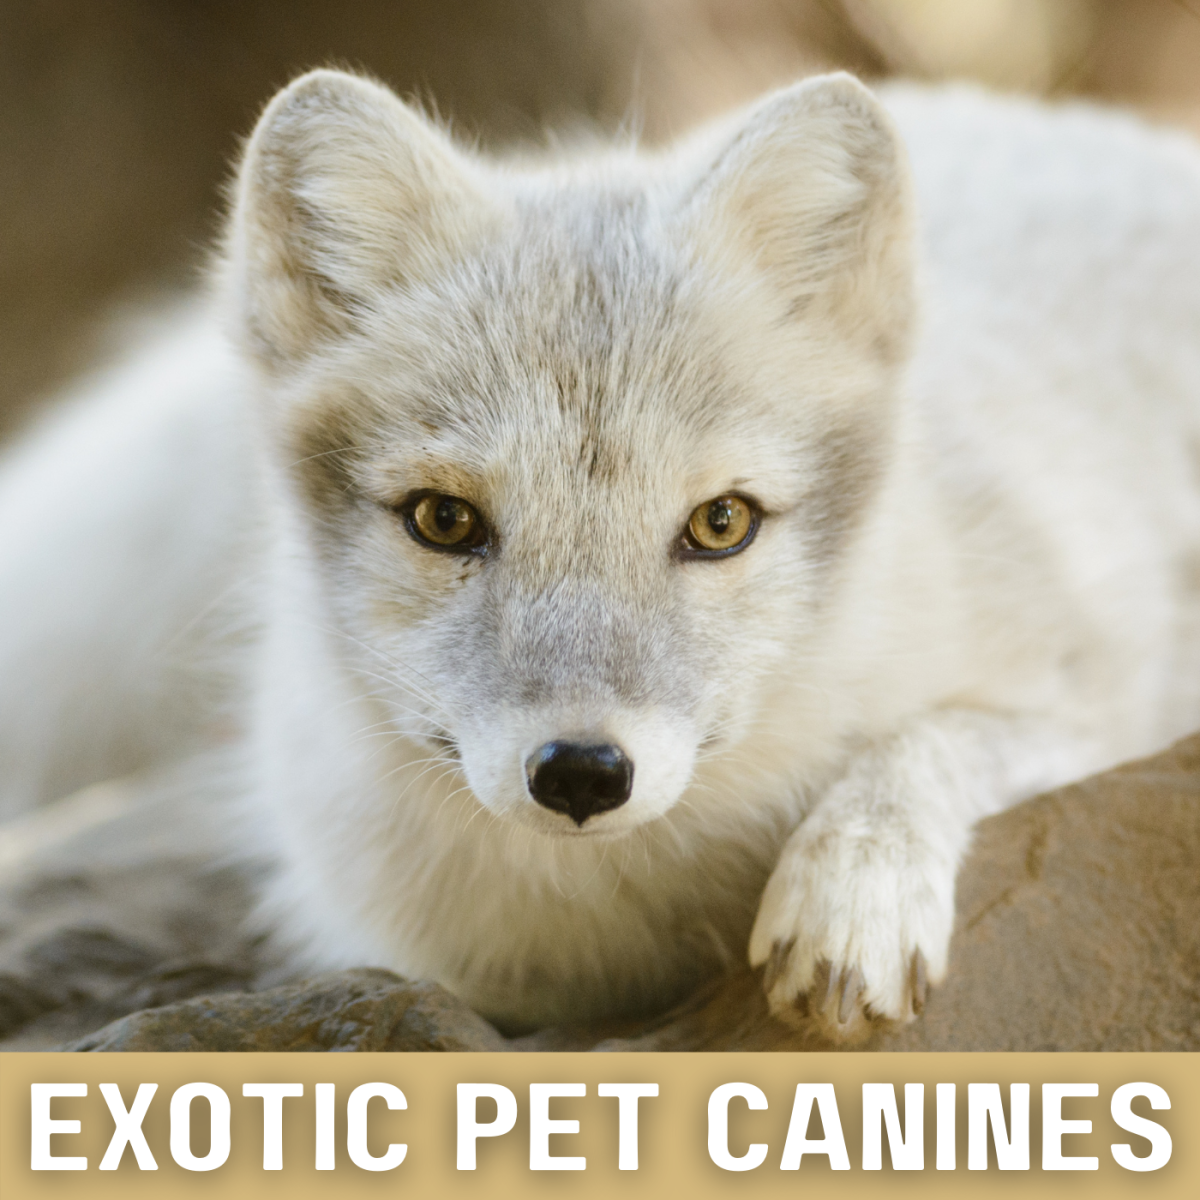 This is an Arctic Fox. Learn more about non-domesticated canines that are kept as pets.